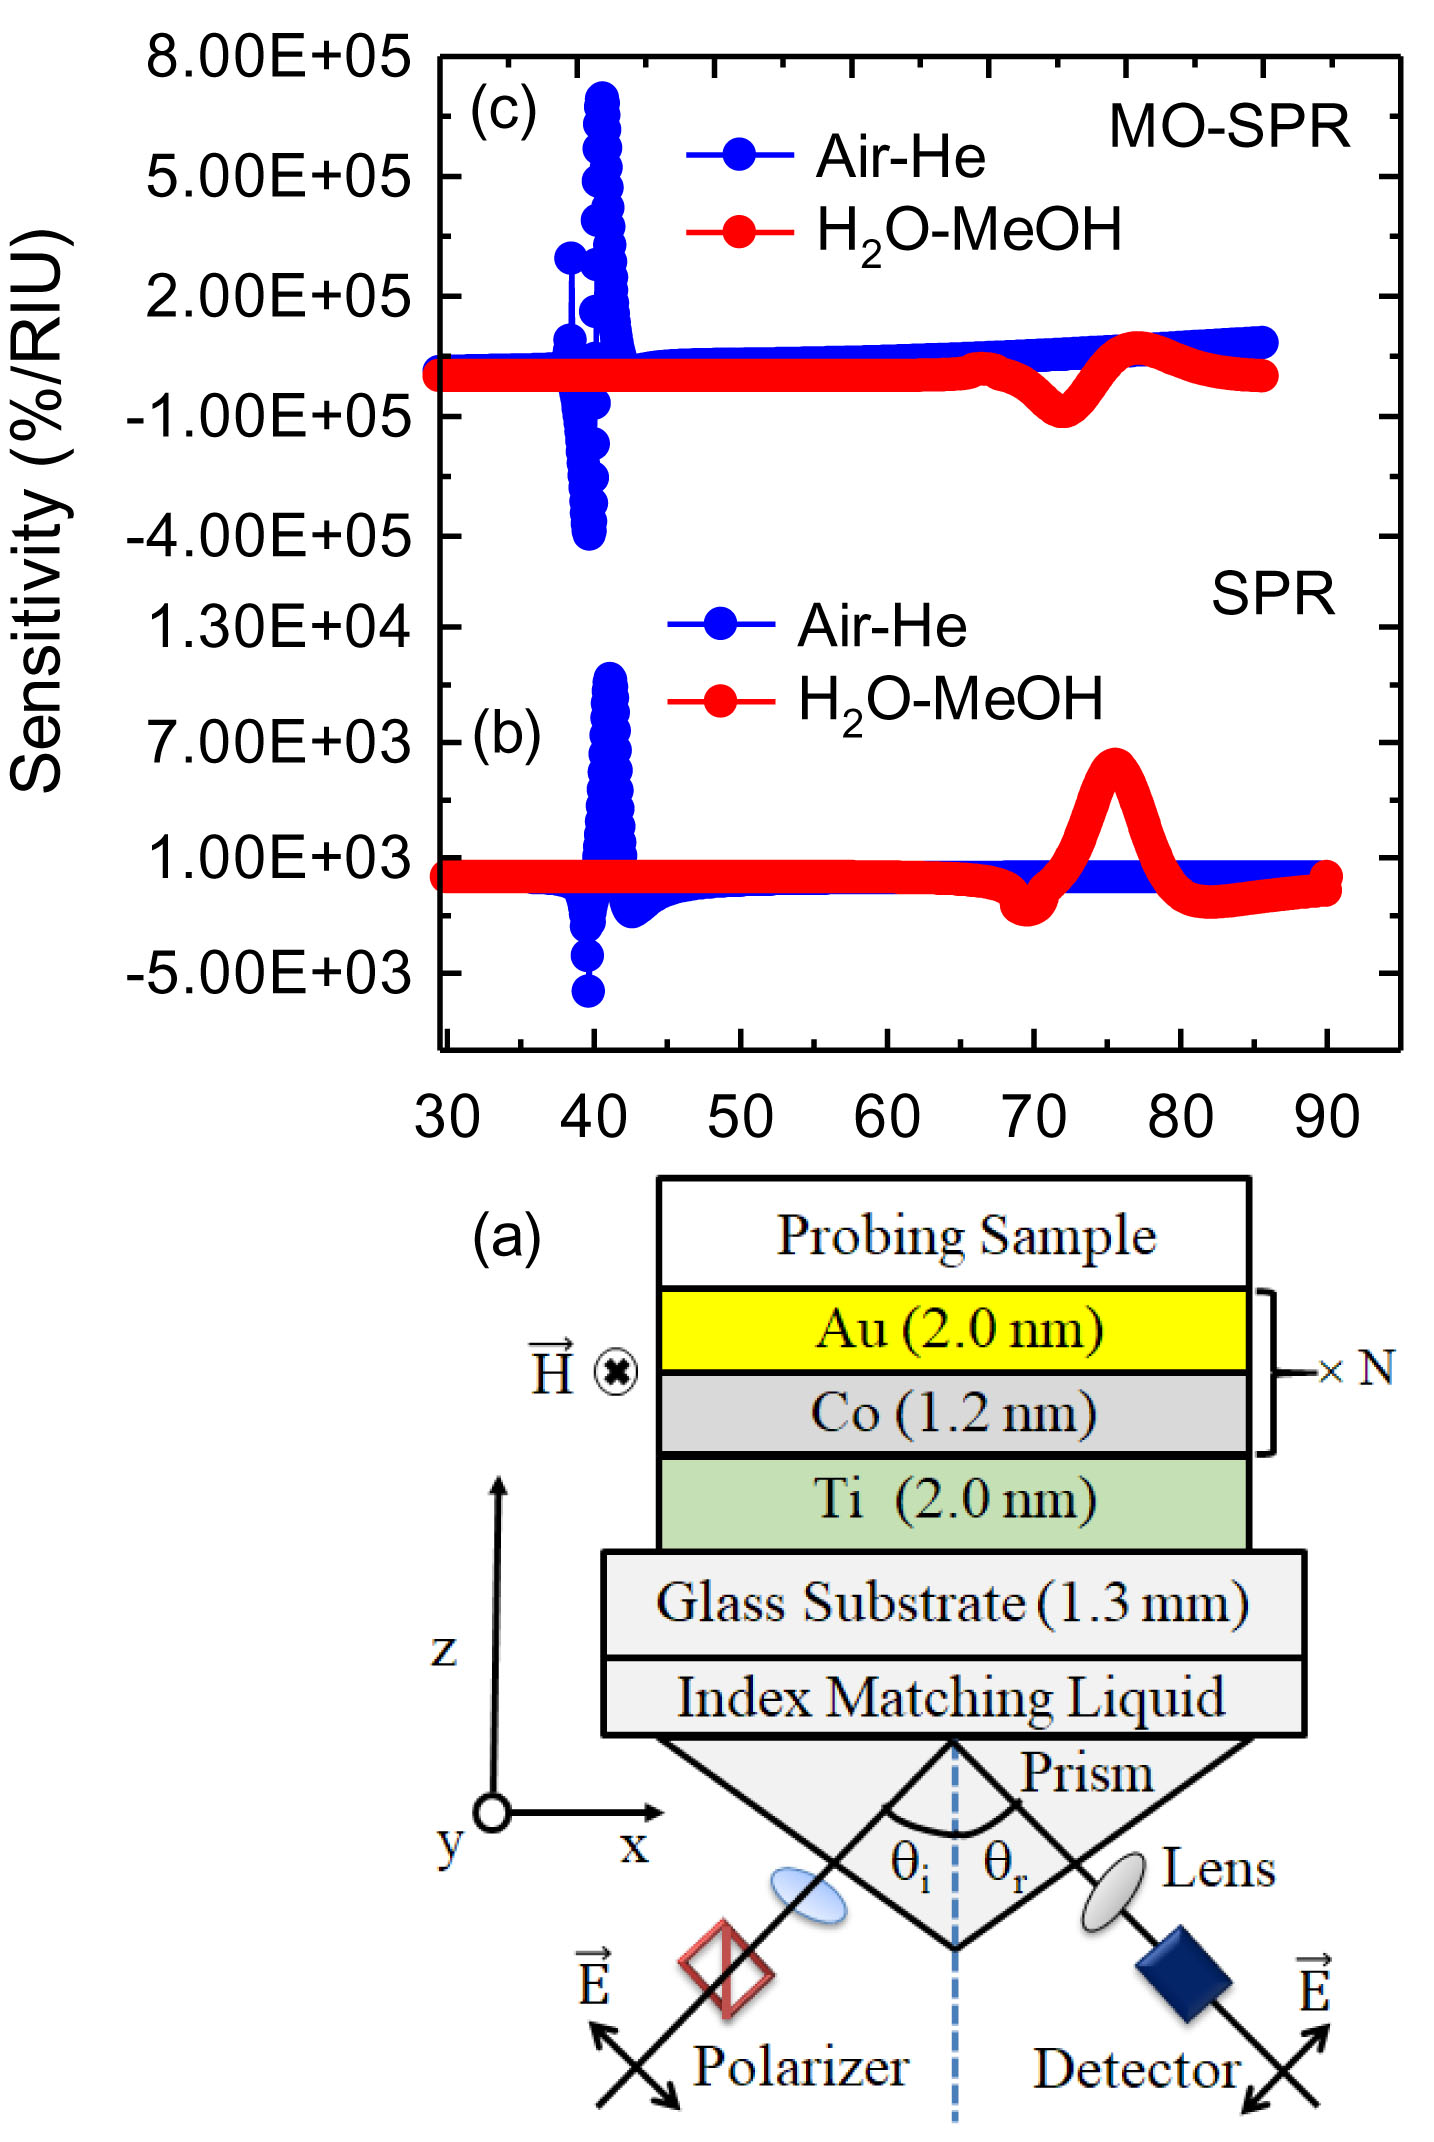 Surface plasmon resonance (SPR) and  Magneto-optical SPR configuration.